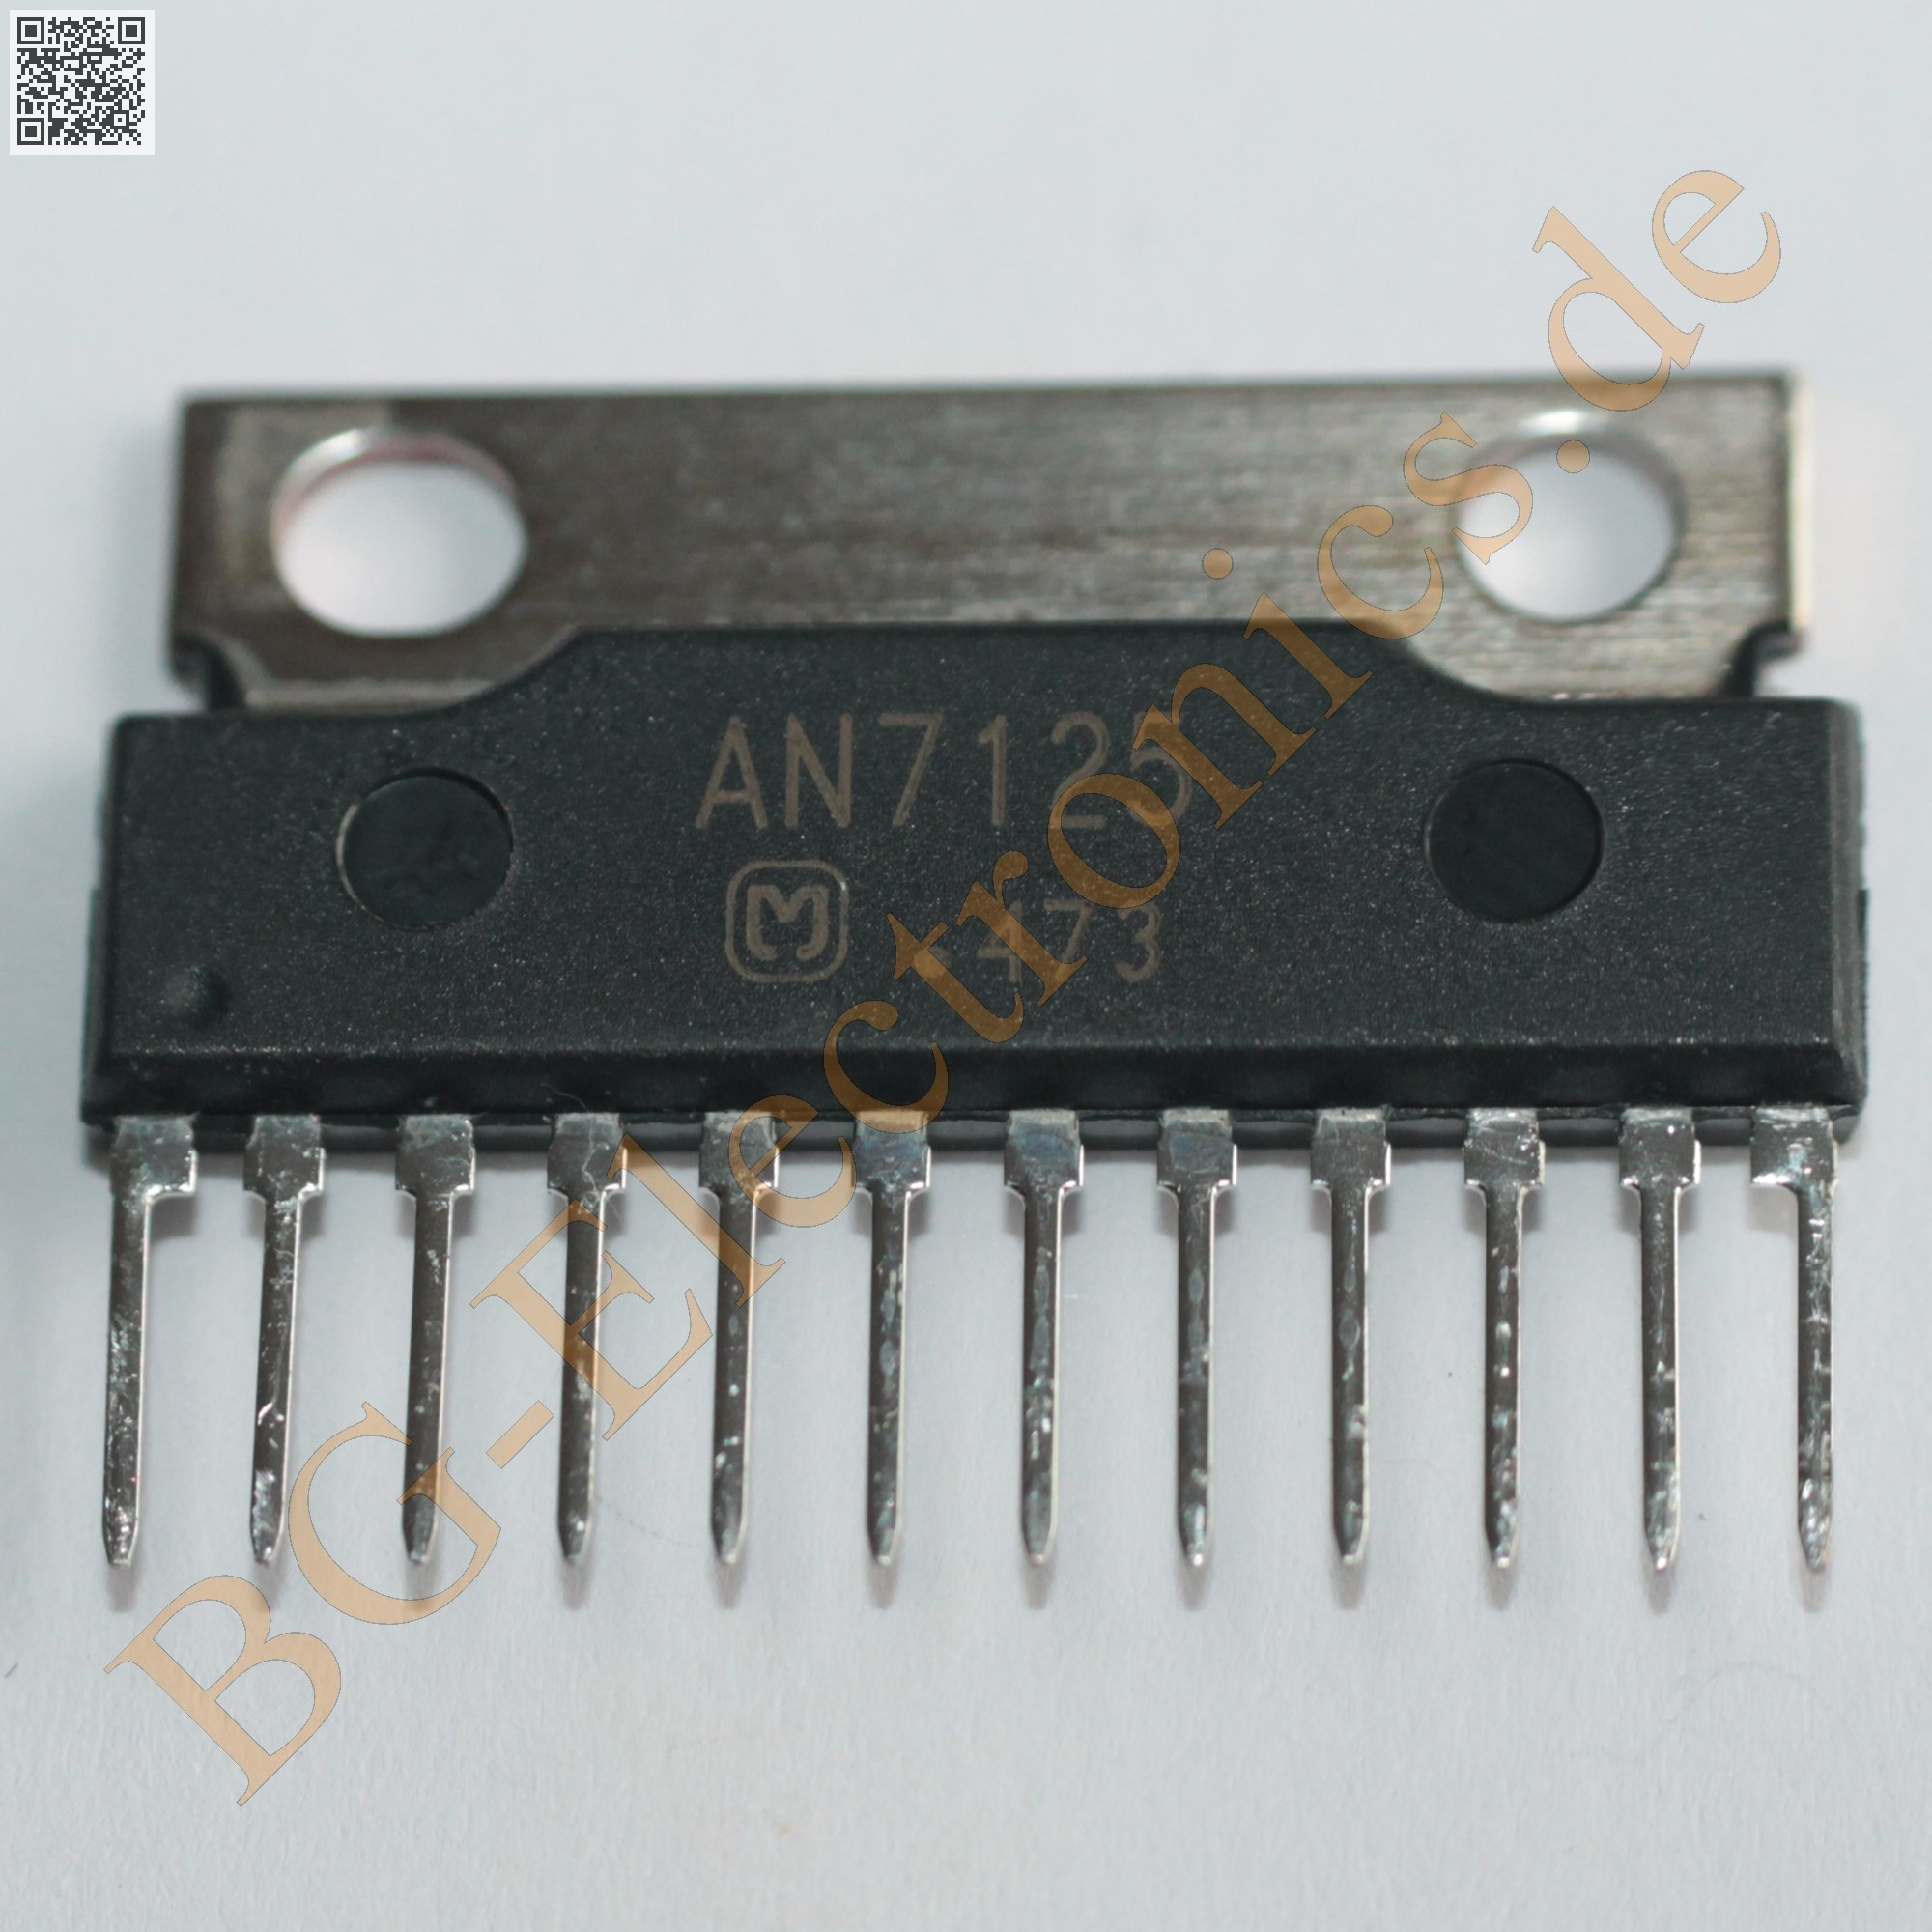 An7125 Bg Electronics 932213318682 Integrated Circuit Transistors Manufacturers Dual Channel Btl Power Amplifier Is A Monolithic Designed For 135 W 12 V4 Output Audio Amplifierit Ic